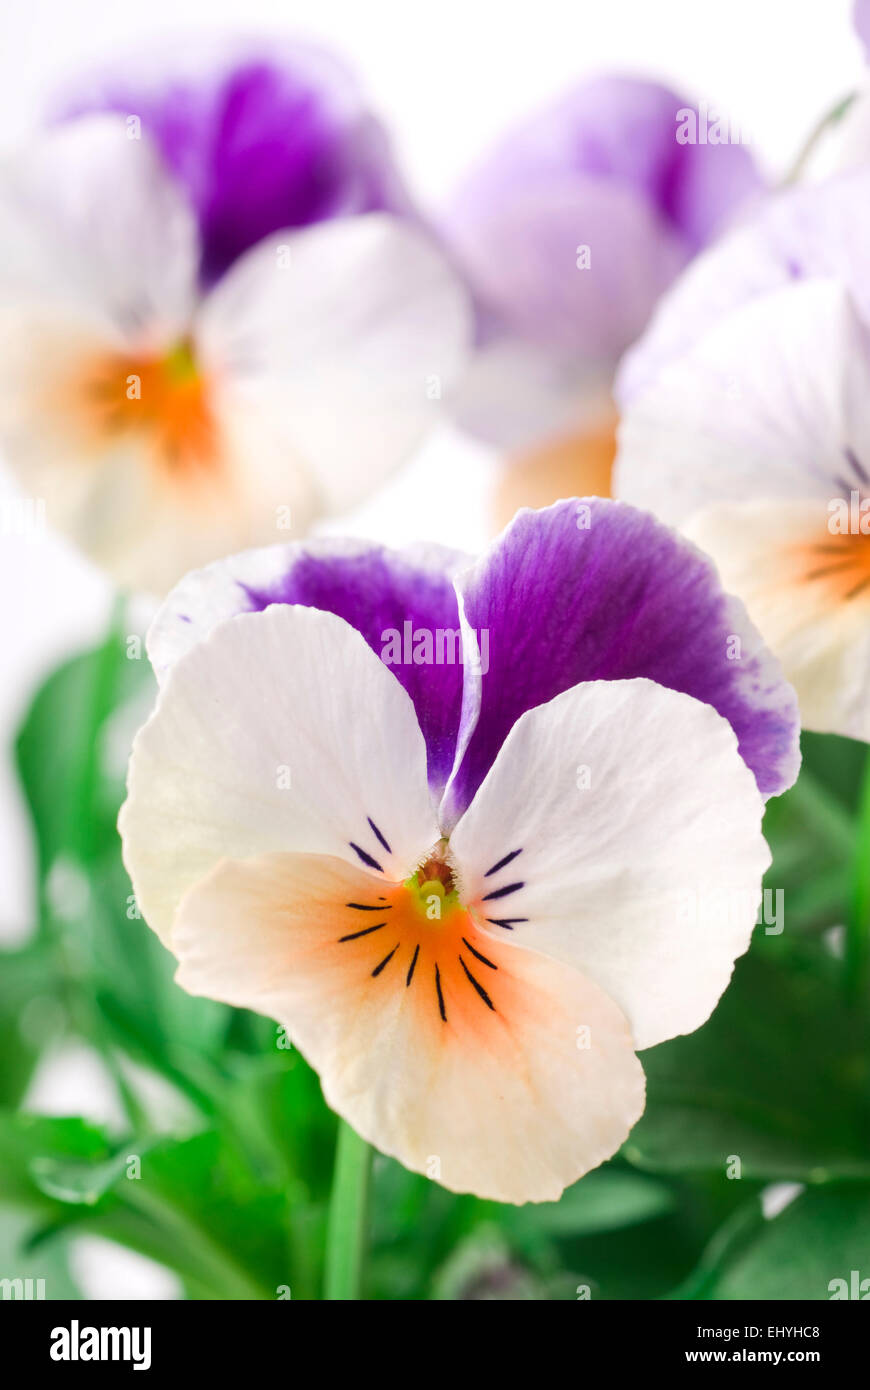 Multi colored spring viola close up background. - Stock Image